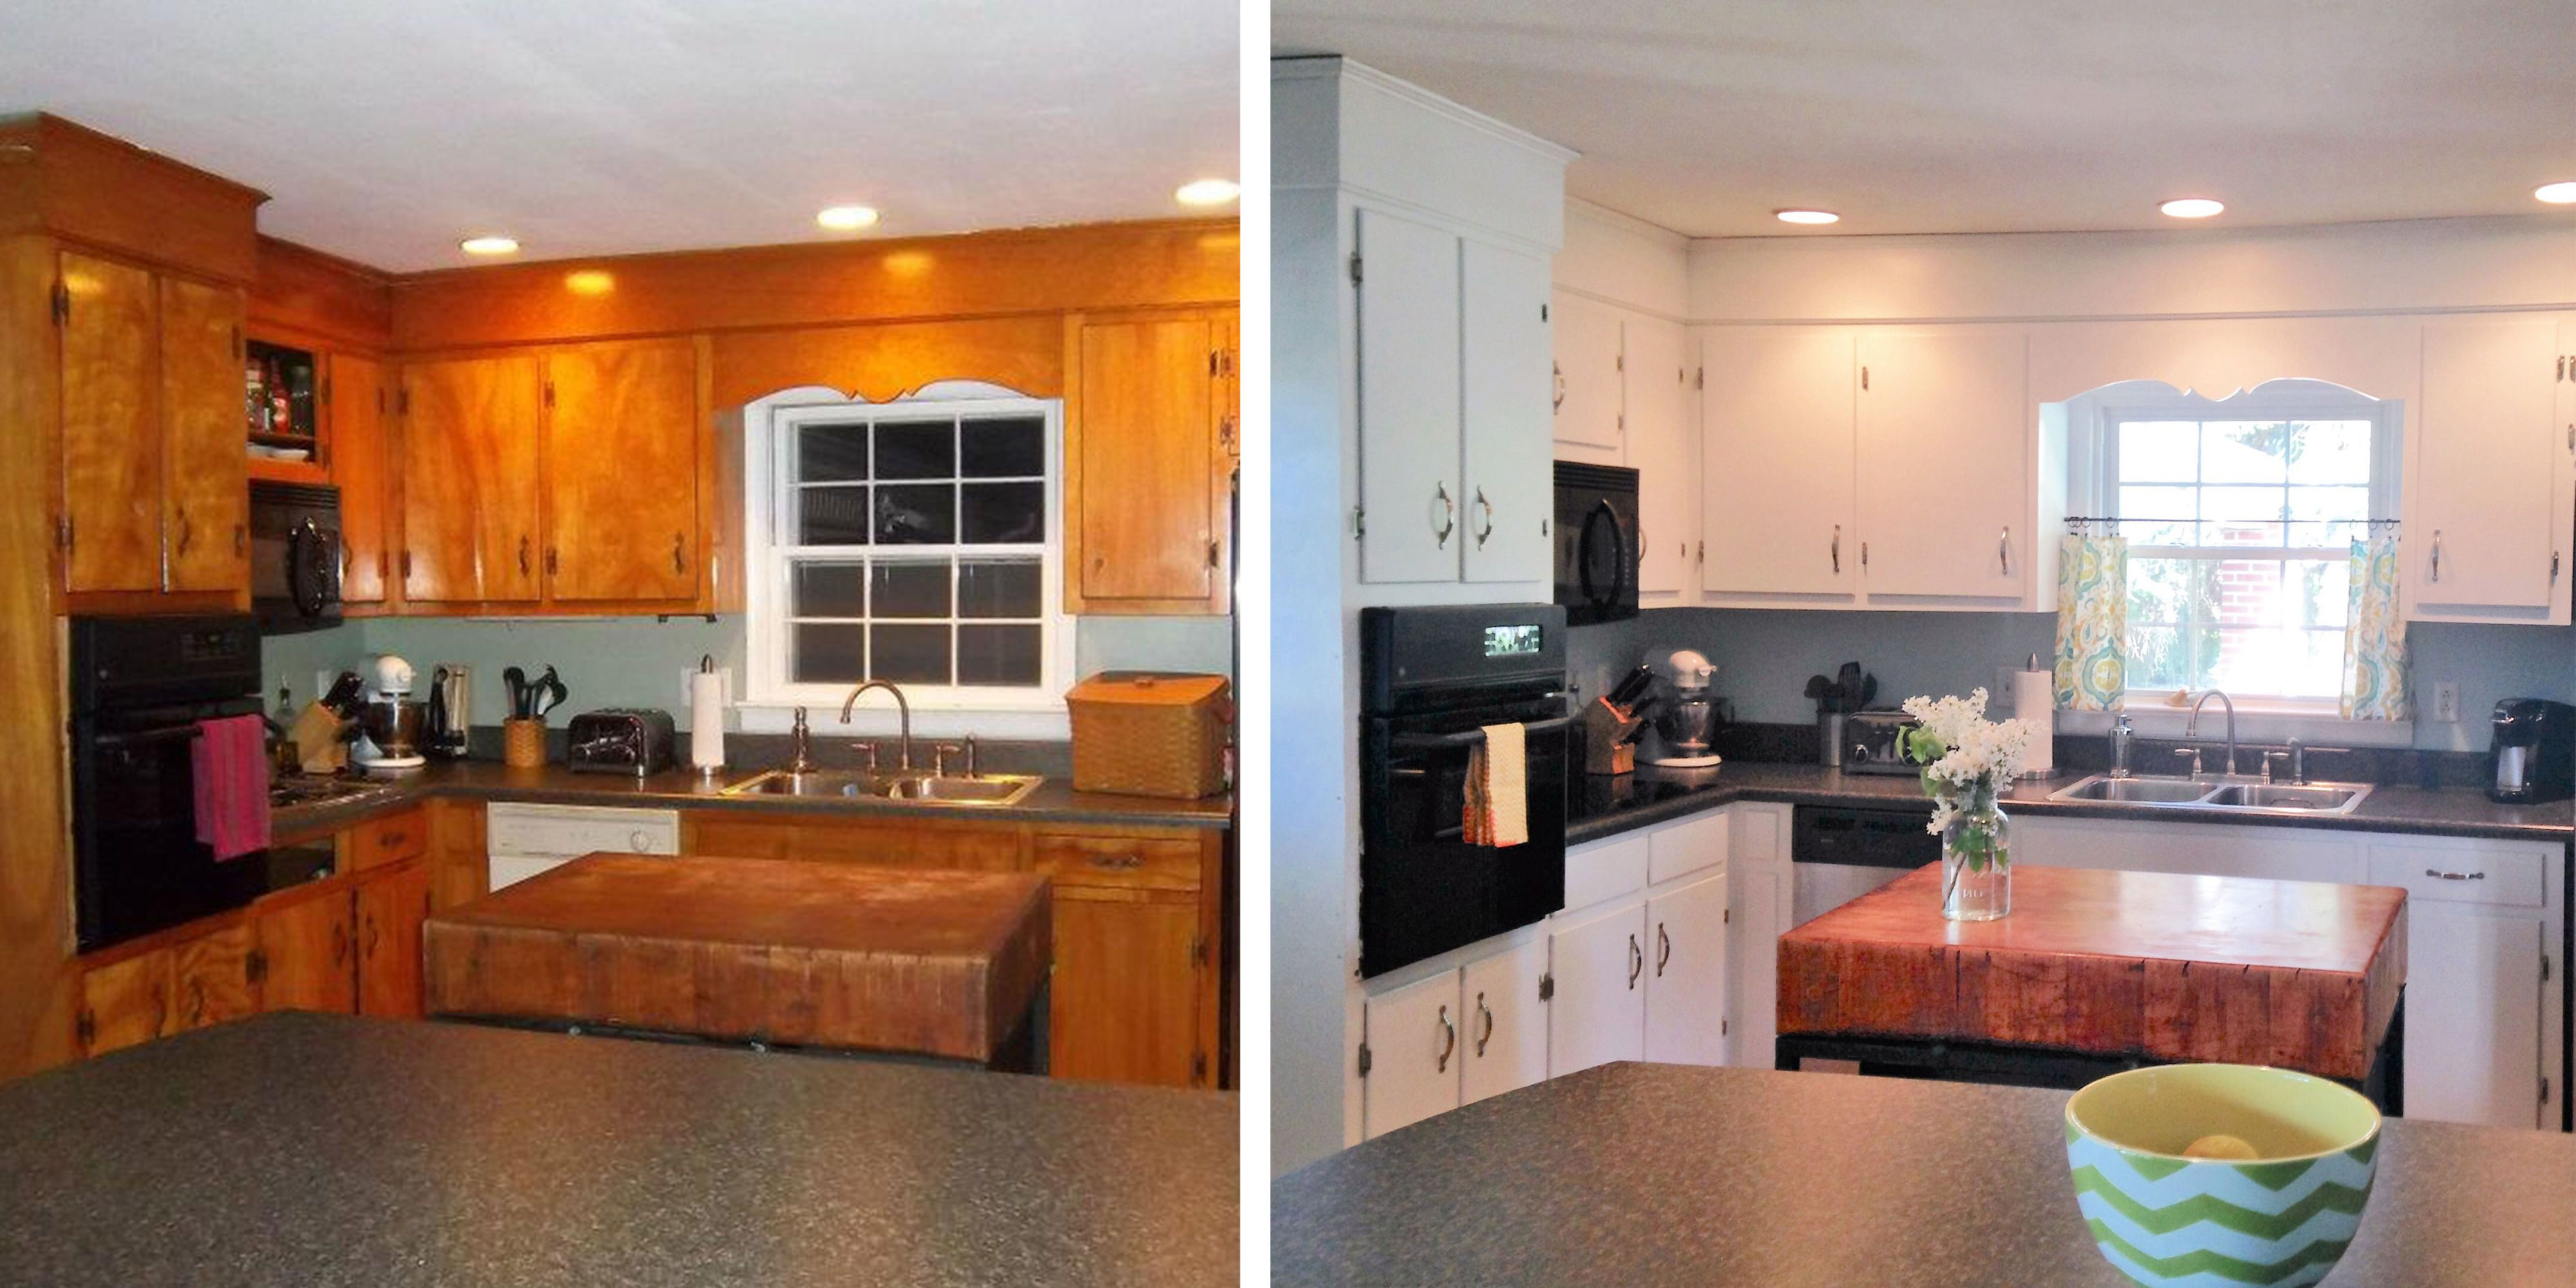 10 diy kitchen cabinet makeovers before after photos that prove rh countryliving com Old Kitchen Cabinets Makeover DIY Kitchen Cabinet Door Makeover